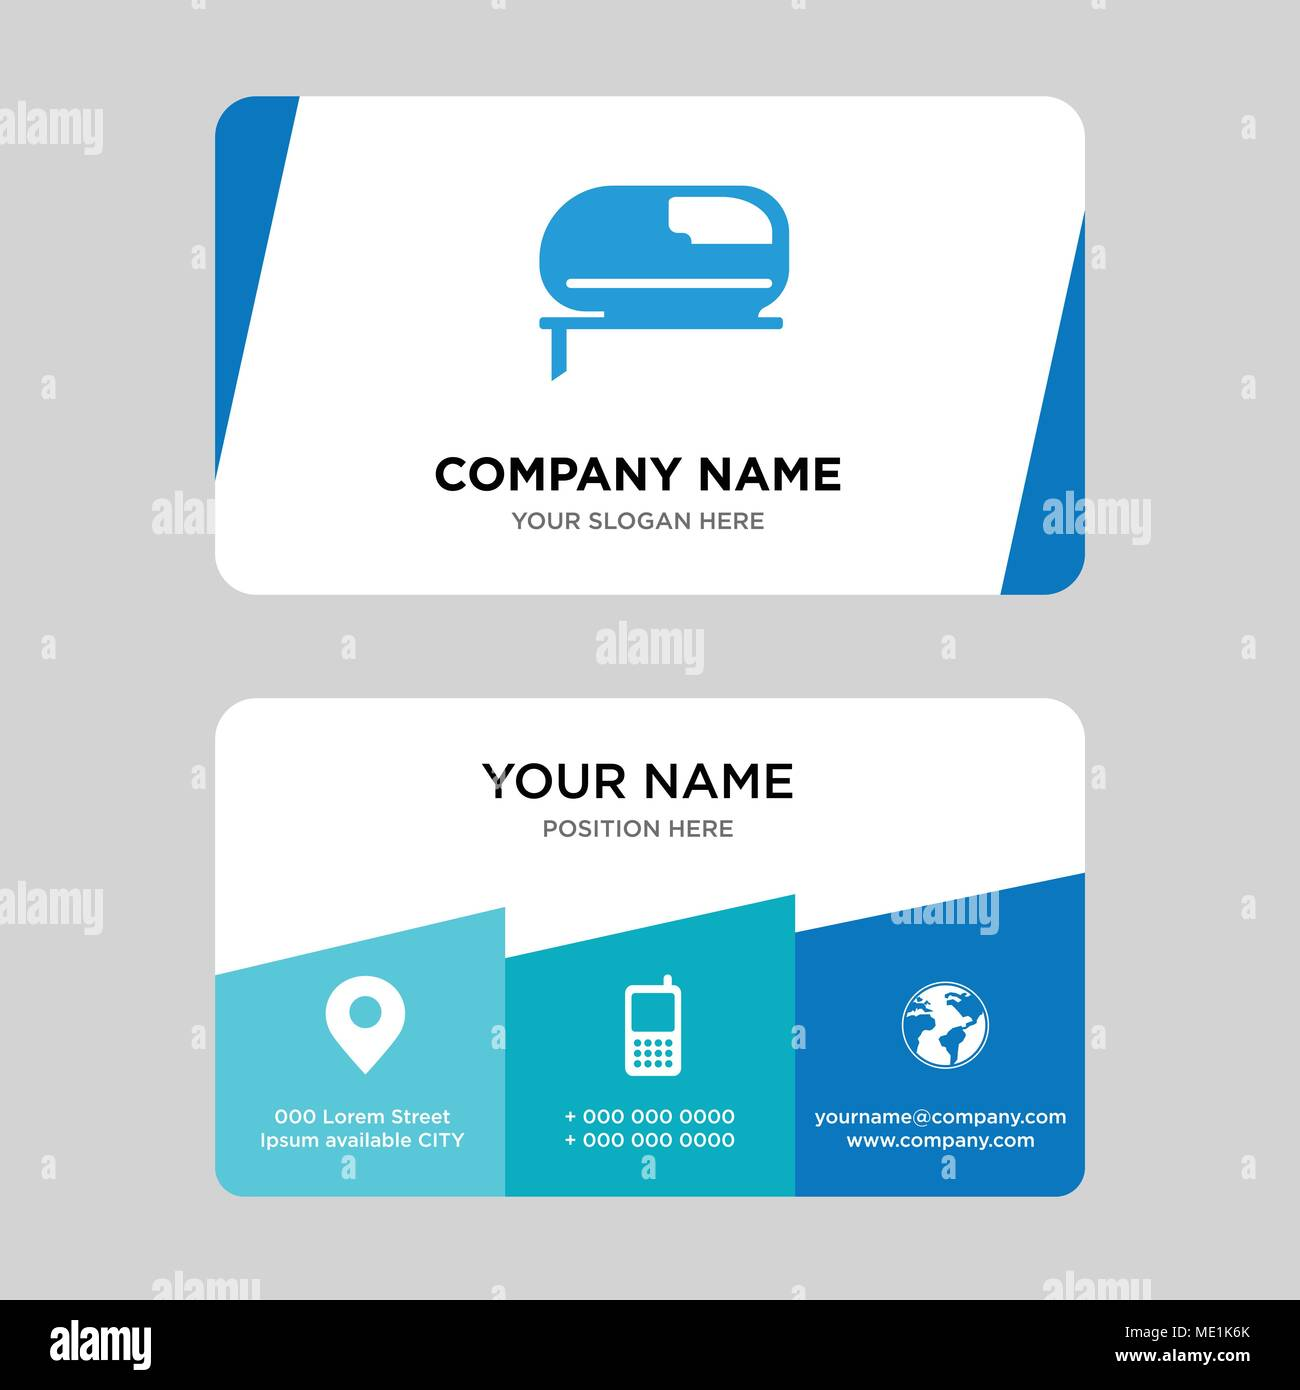 grinder business card design template, Visiting for your company, Modern Creative and Clean identity Card Vector Illustration - Stock Vector